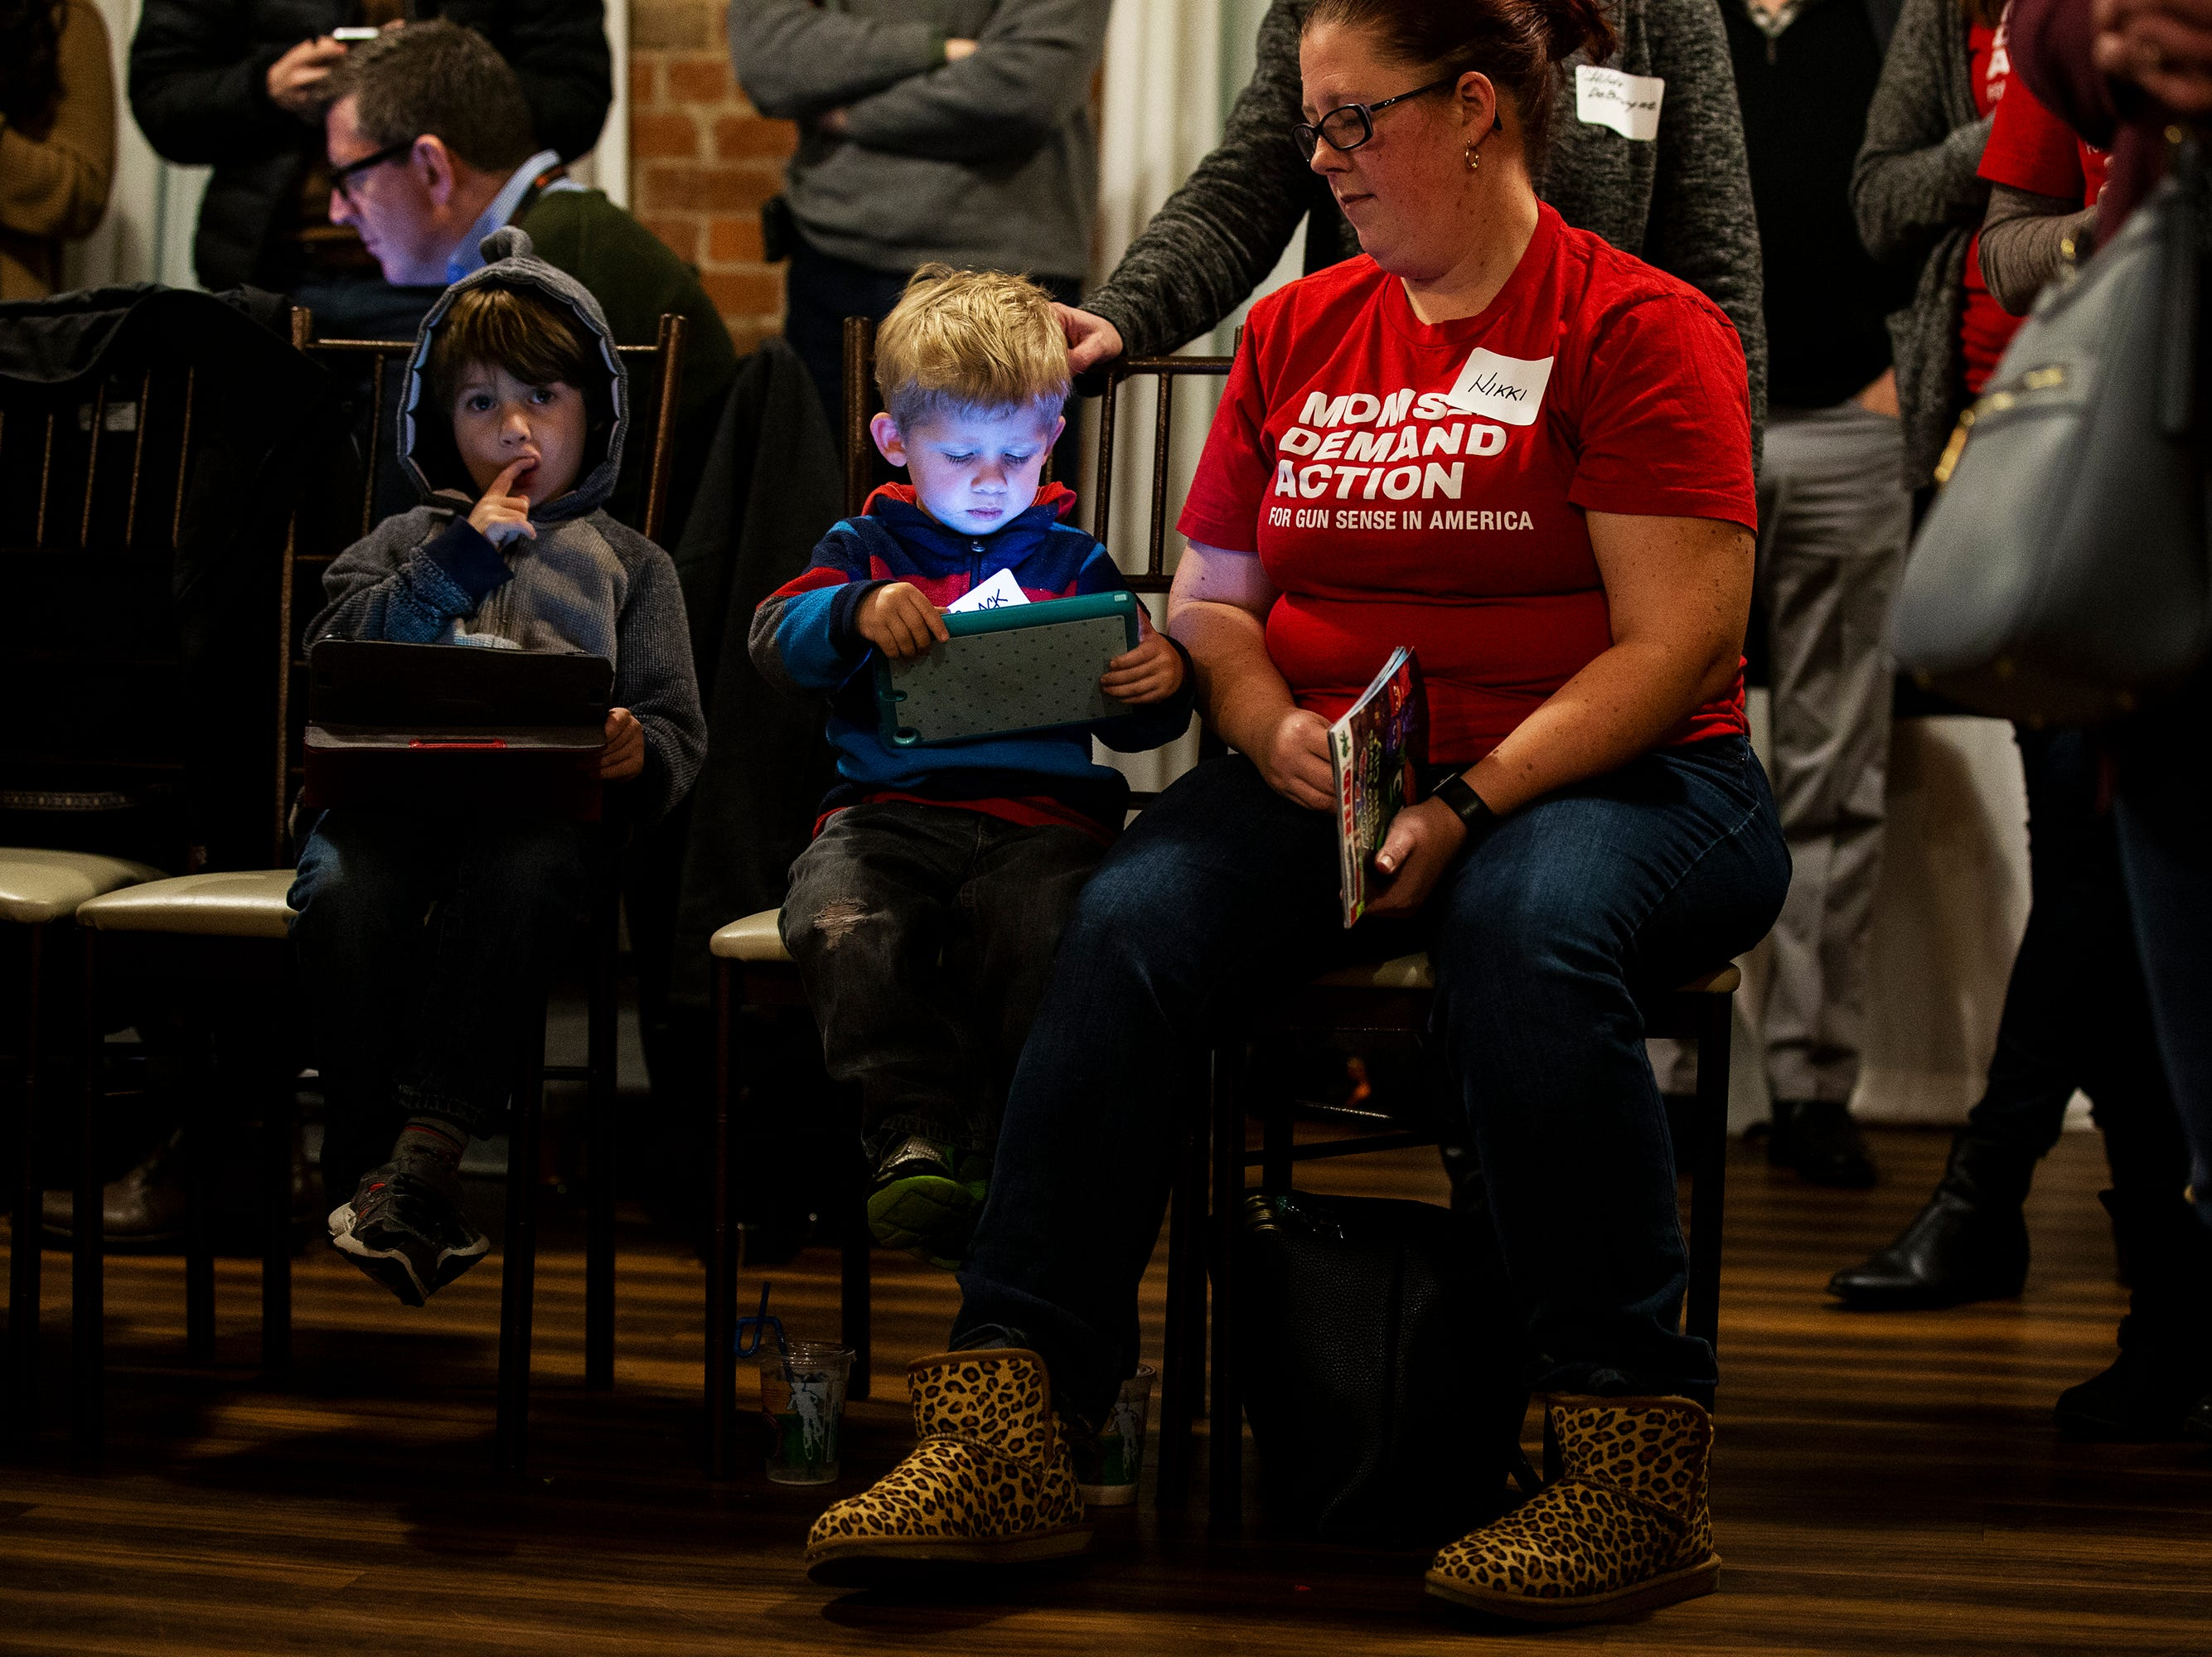 A pair of boys look down at tablets while Former New York City Mayor Michael Bloomberg speaks at the Iowa Moms Demand Action member meeting on Tuesday, Dec. 4, 2018, at the Iowa Taproom in Des Moines.